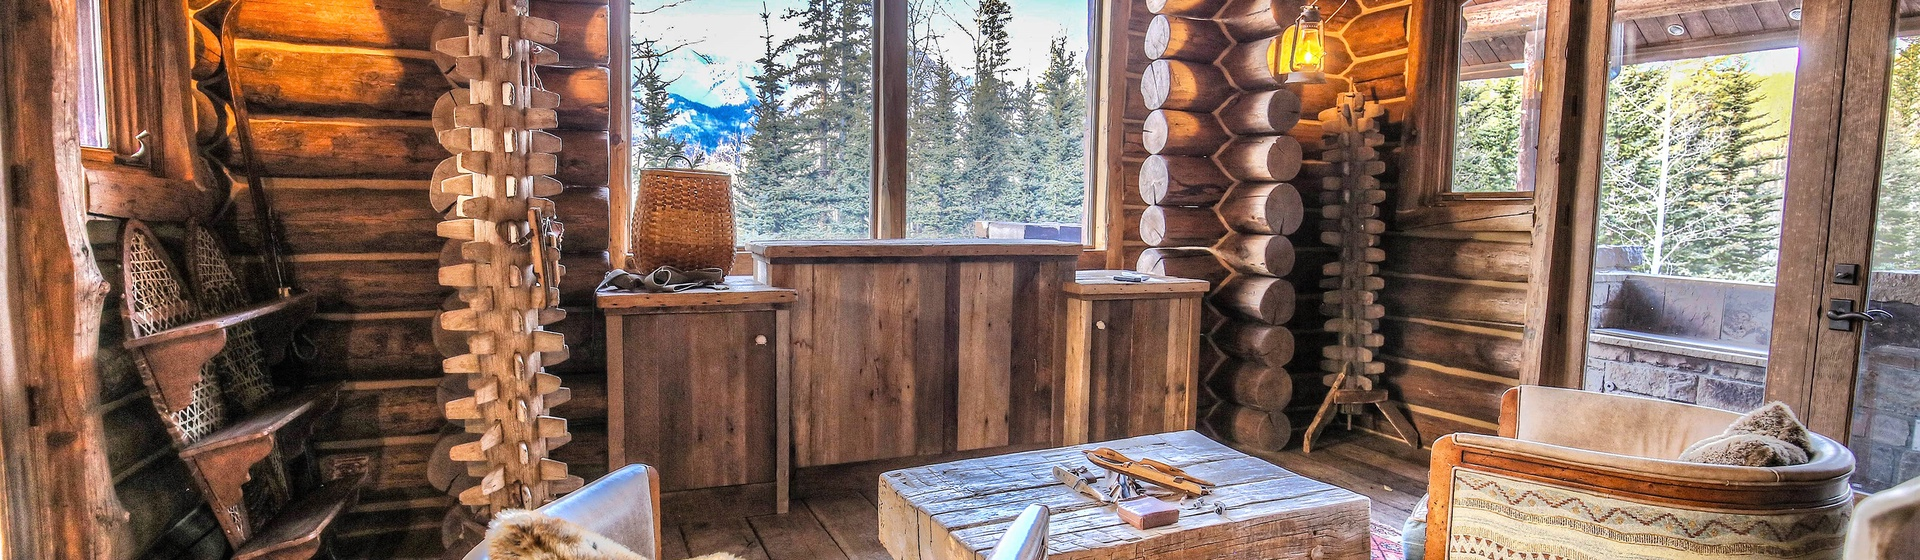 44-Telluride-Castlewood-Sitting-Area-with-View-Angle-Web.jpg